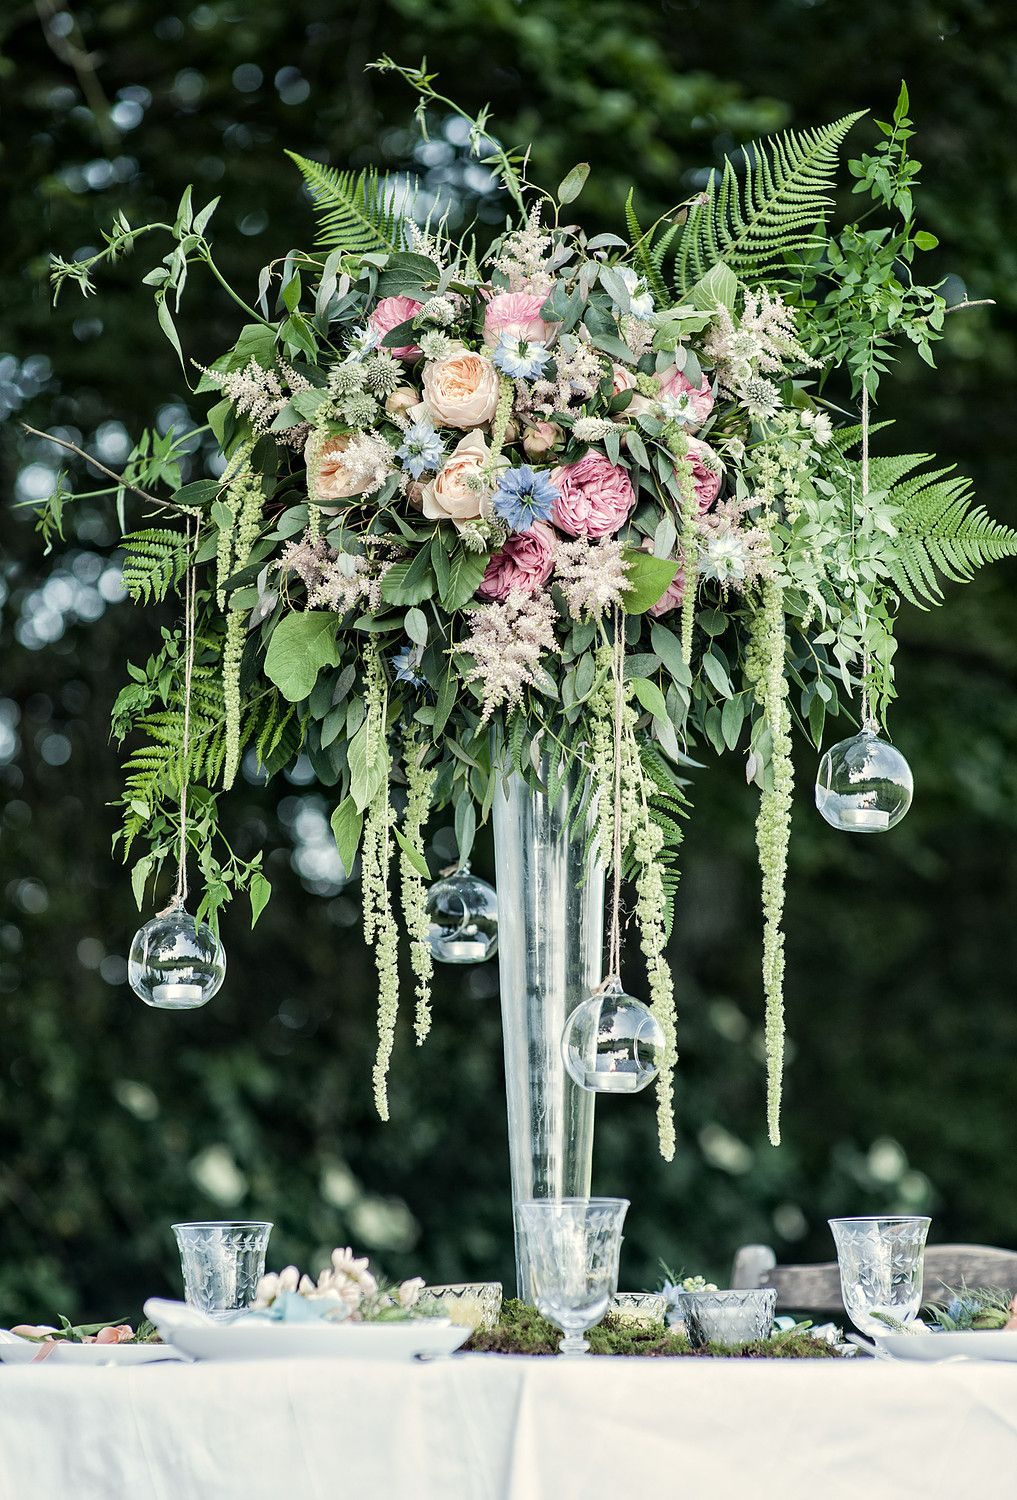 Large Wildflower Centrepiece With Hanging Glass Baubles For